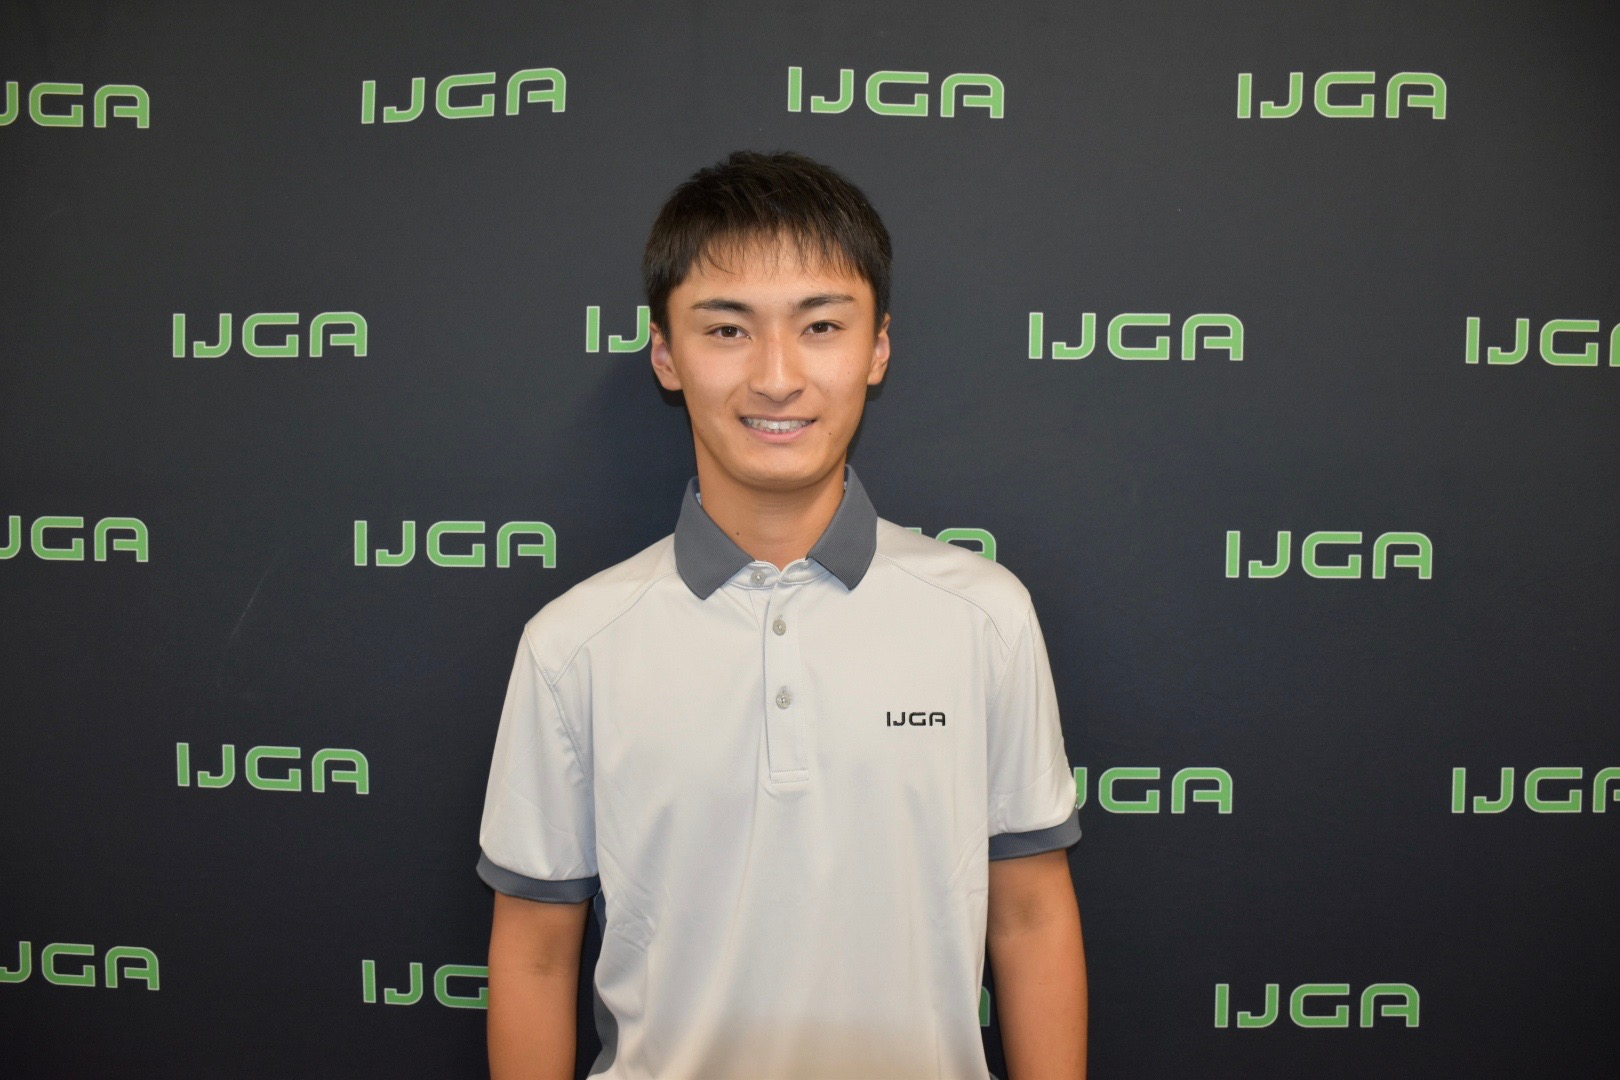 IJGA Student-Athlete Kotaro Murata Wins Hurricane Junior Tour Elite Series at The Legends, Orange Lake Resort